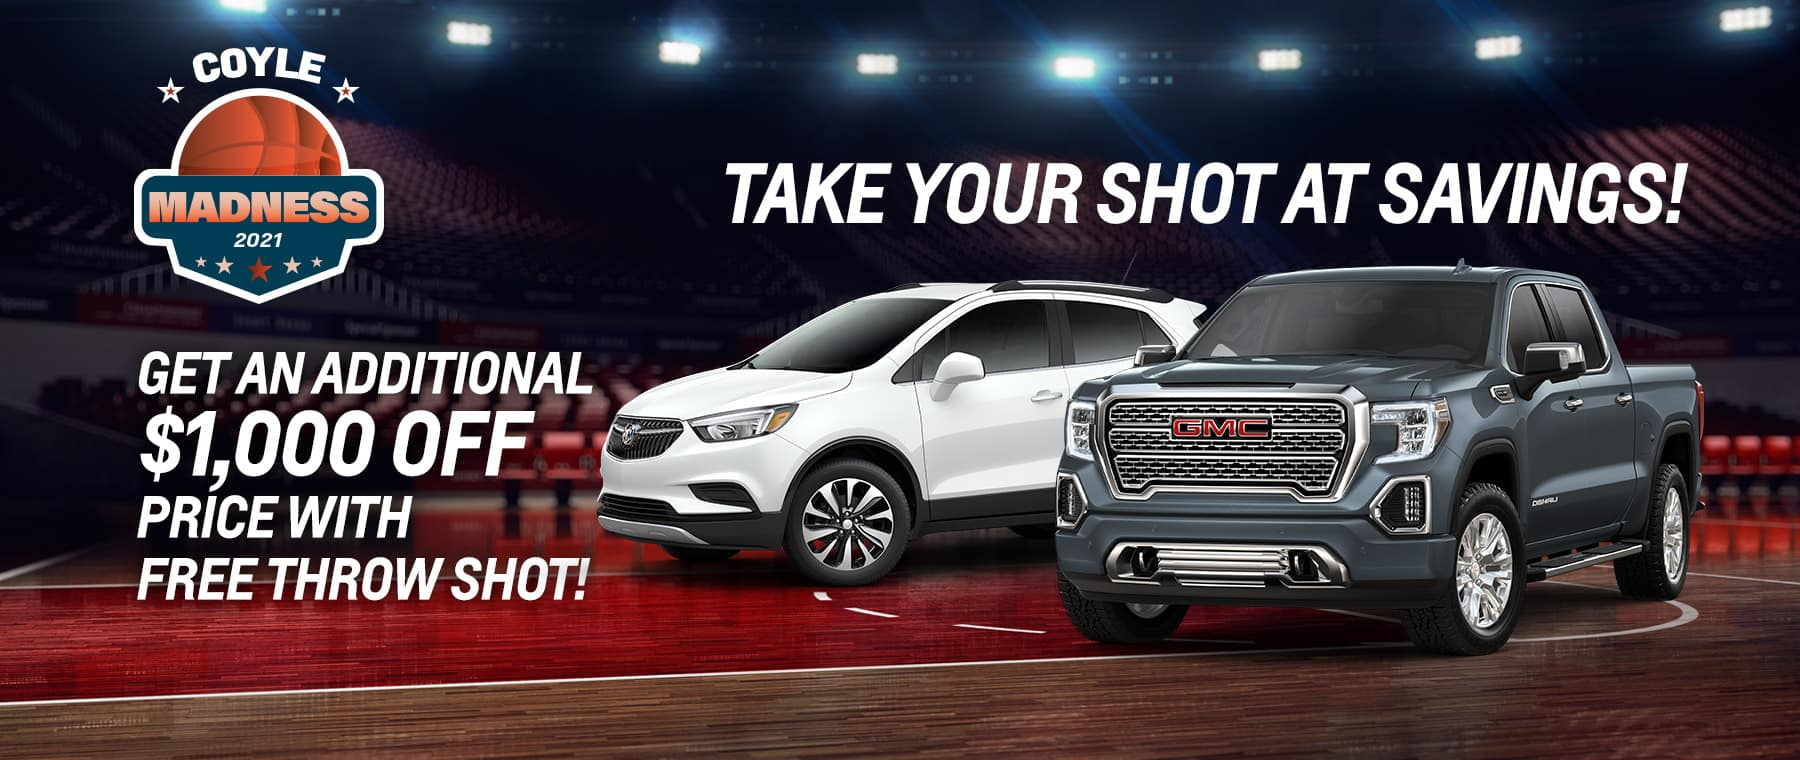 $1000 Free Throw! Get an additional $1000 off the price!